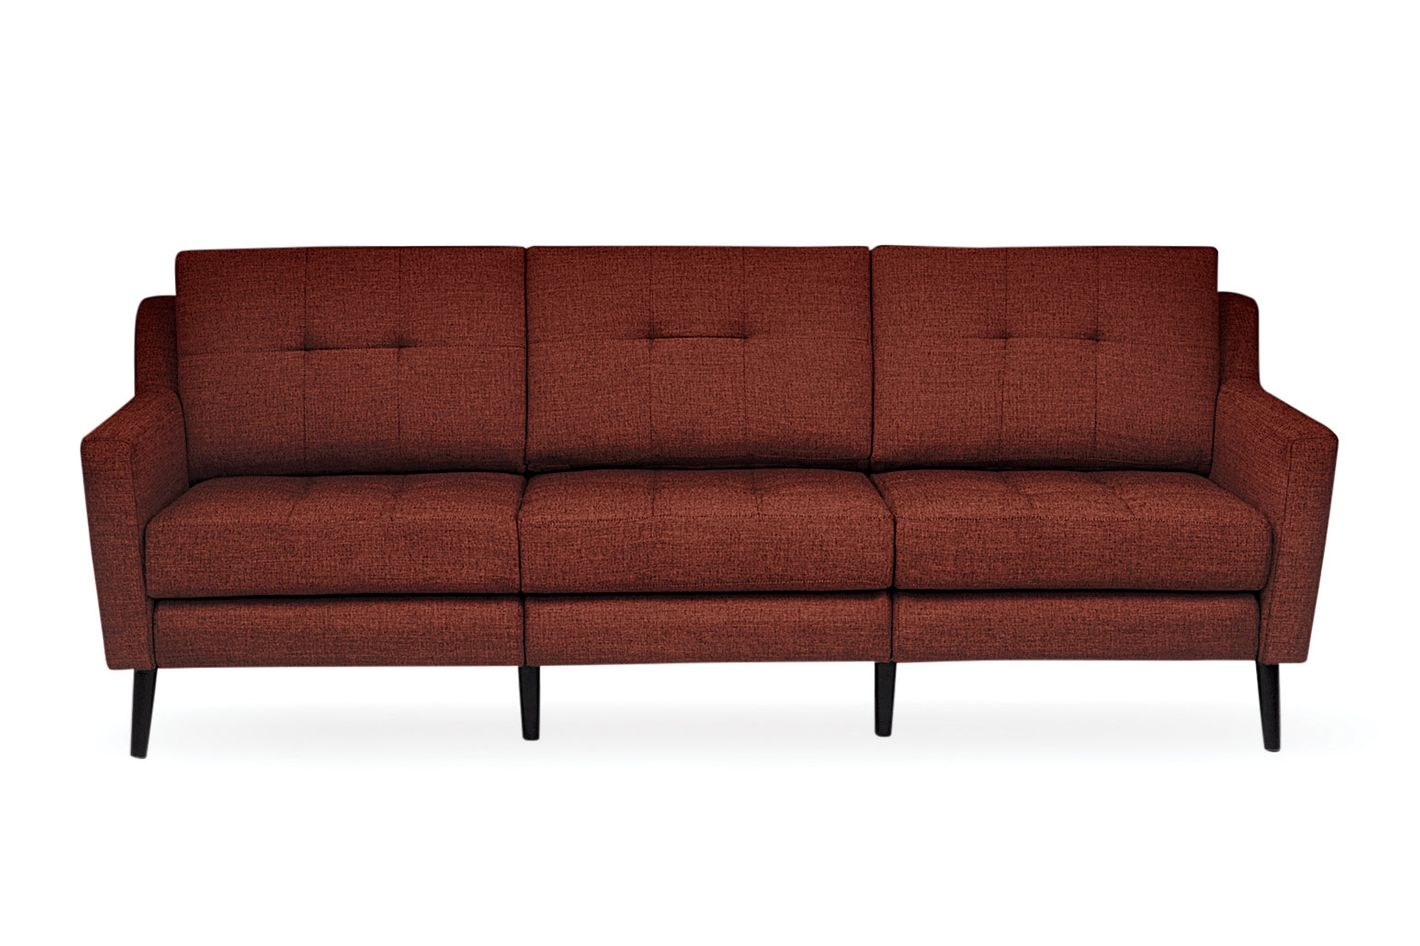 Burrow sofa